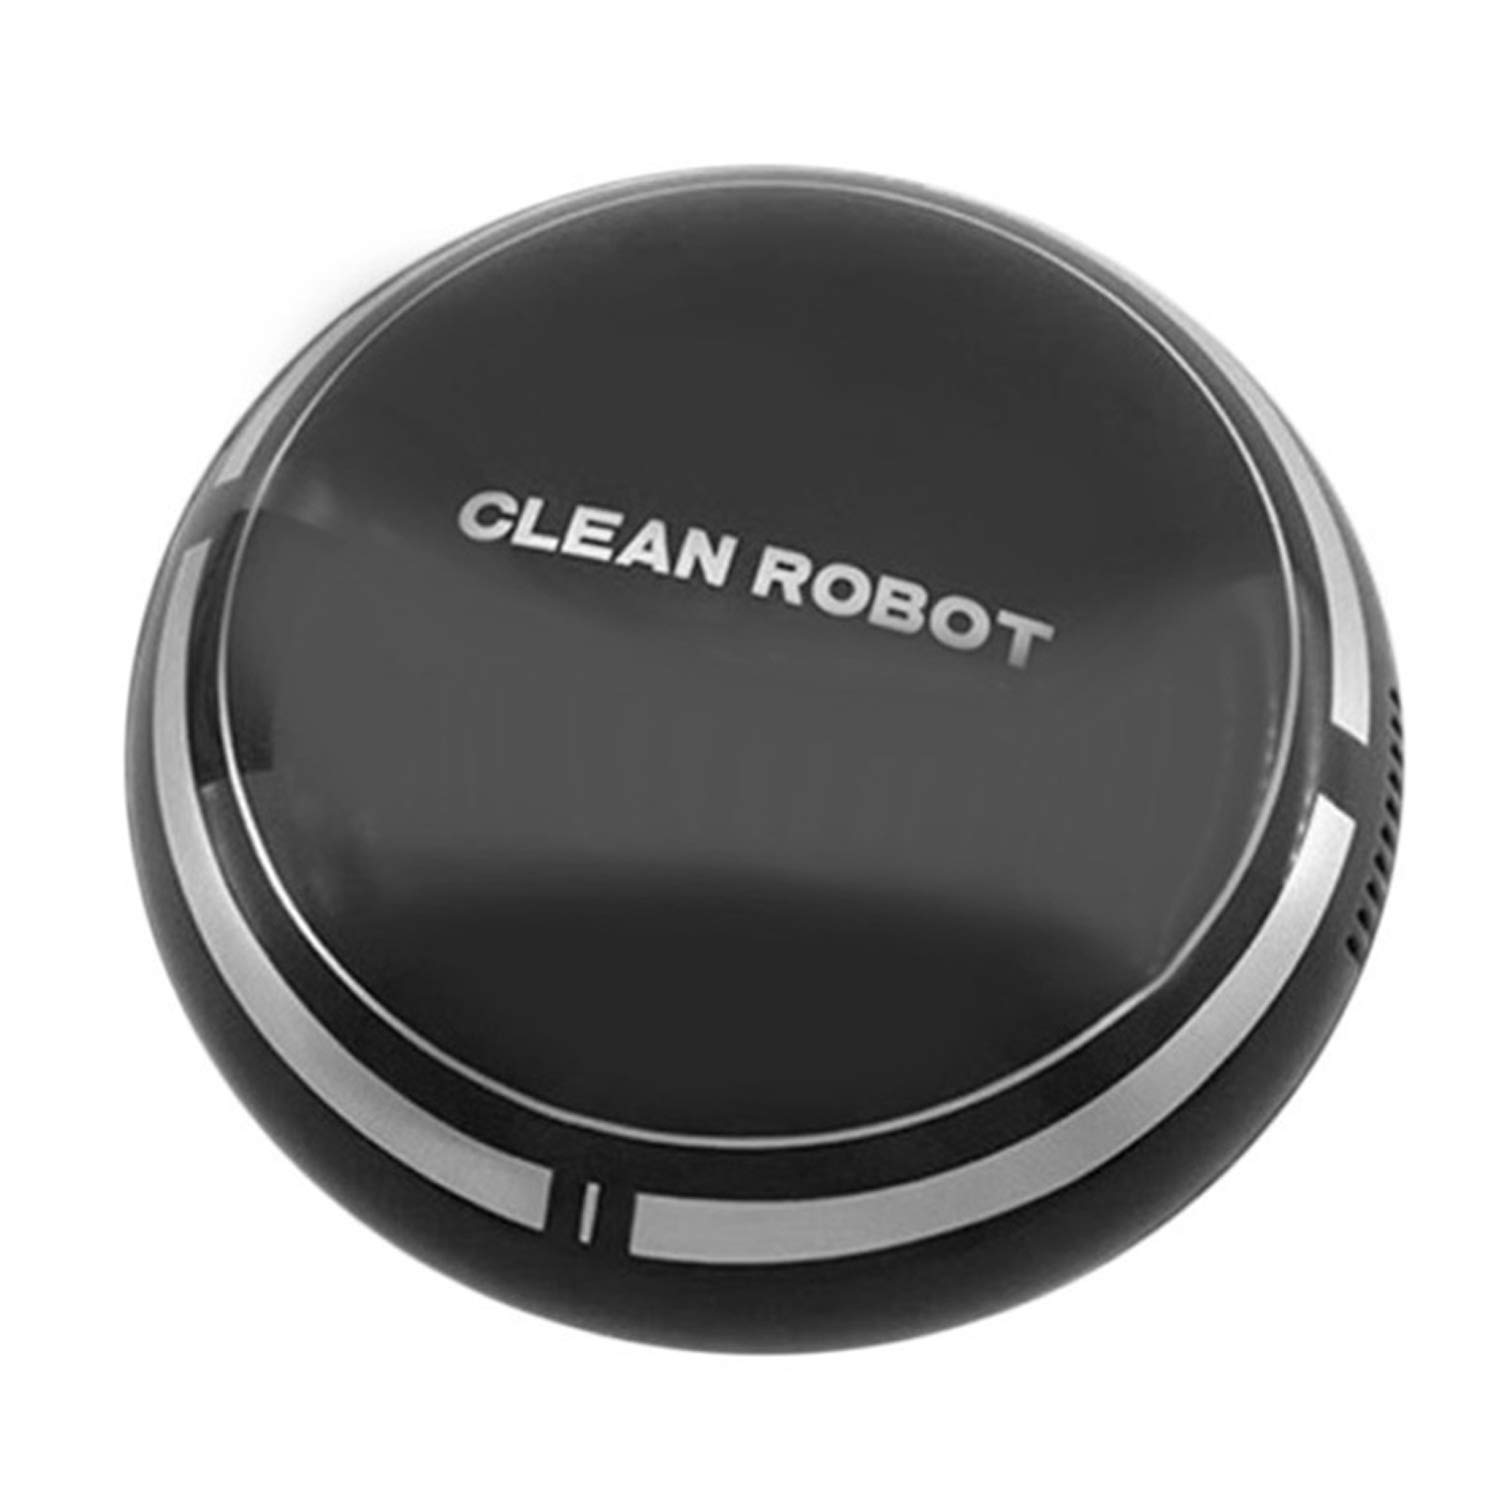 Gosear Automatic Floor Cleaner Robot, Automatic Sweeper Vacuum Rechargeable Smart Electronic Automatic Sweeping Robot Vacuum Sweeper Cleaner for Home Floor Cleaning Black